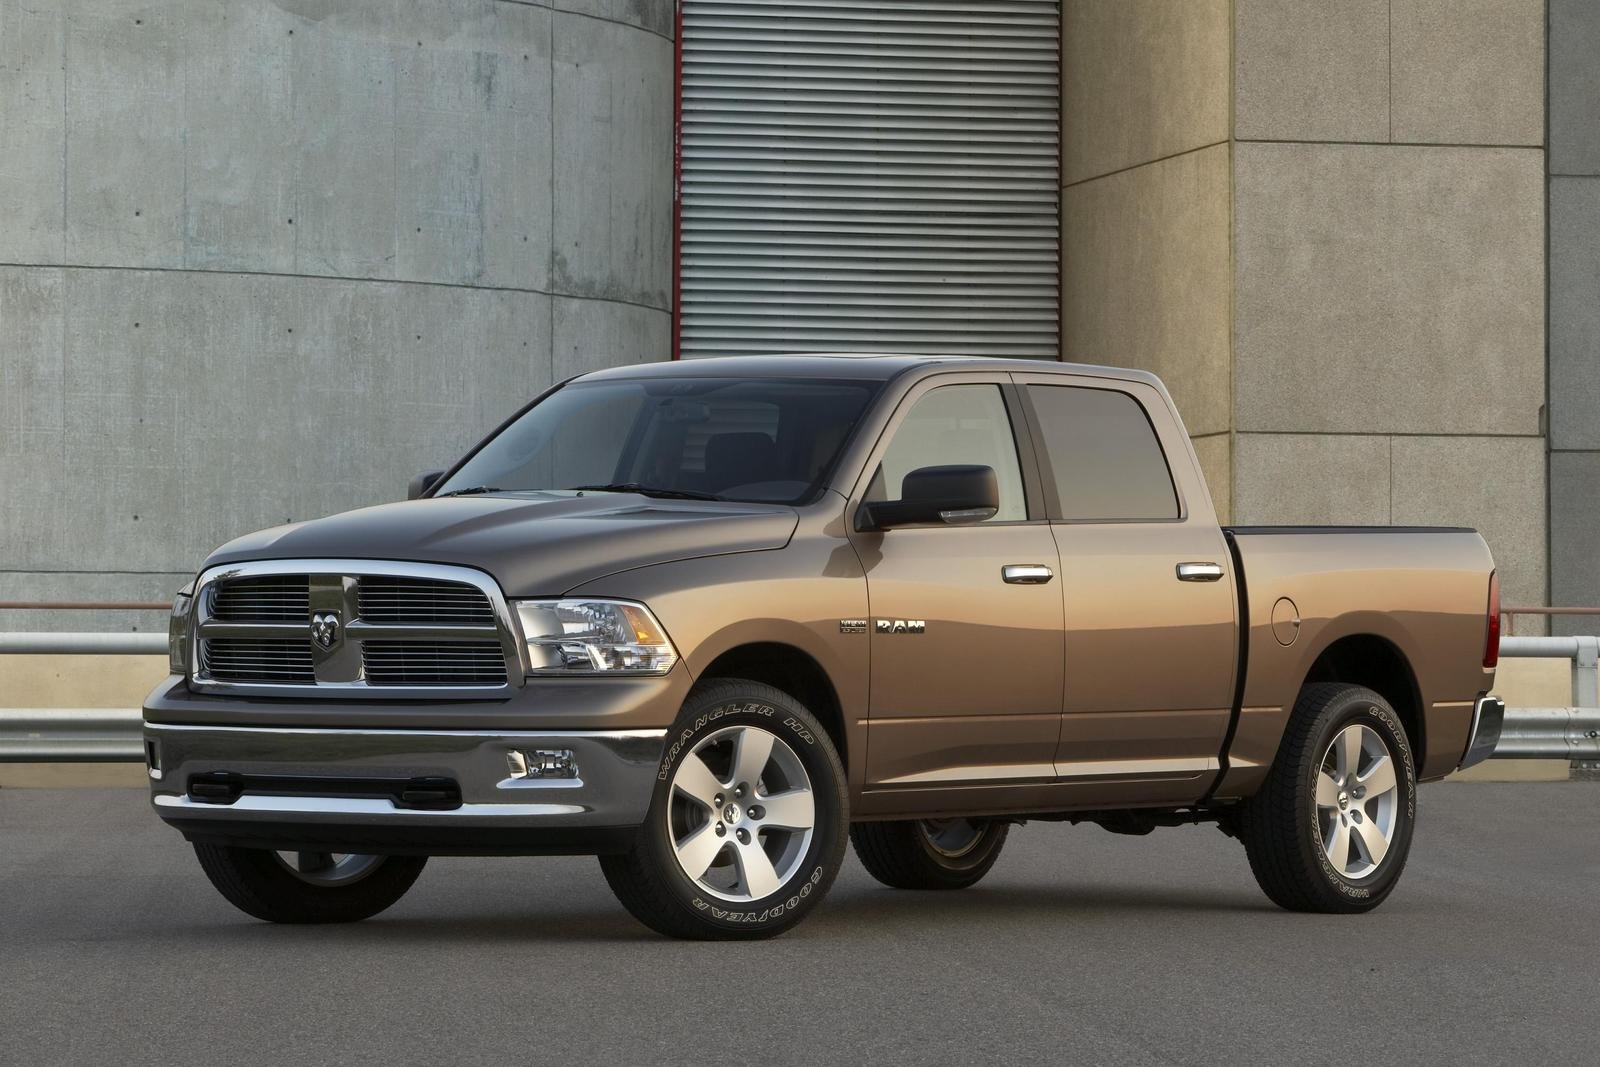 2009 dodge ram 1500 lone star edition review top speed. Black Bedroom Furniture Sets. Home Design Ideas